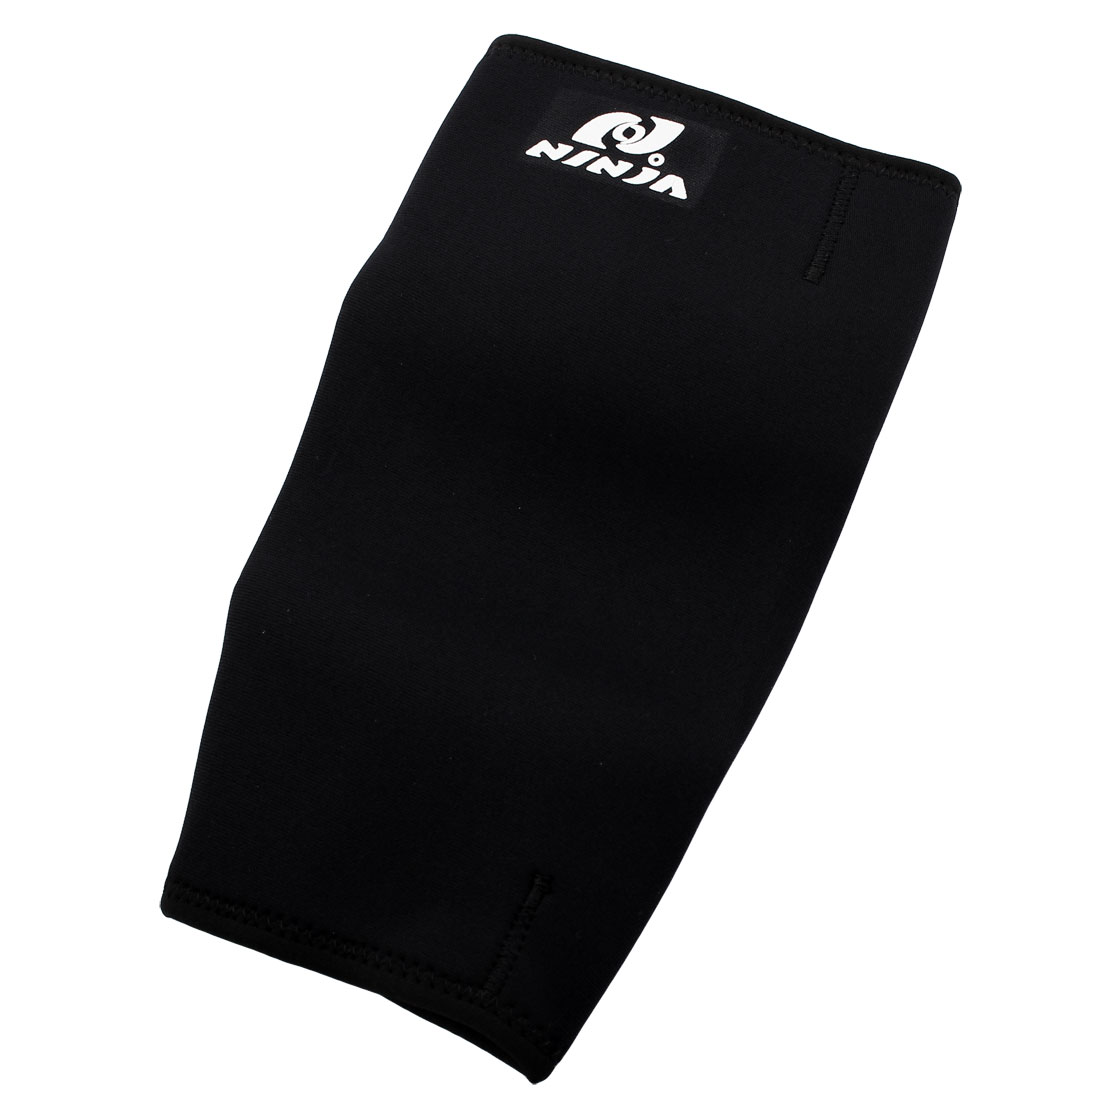 Black Elastic Soft Neoprene Sports Calf Support Brace